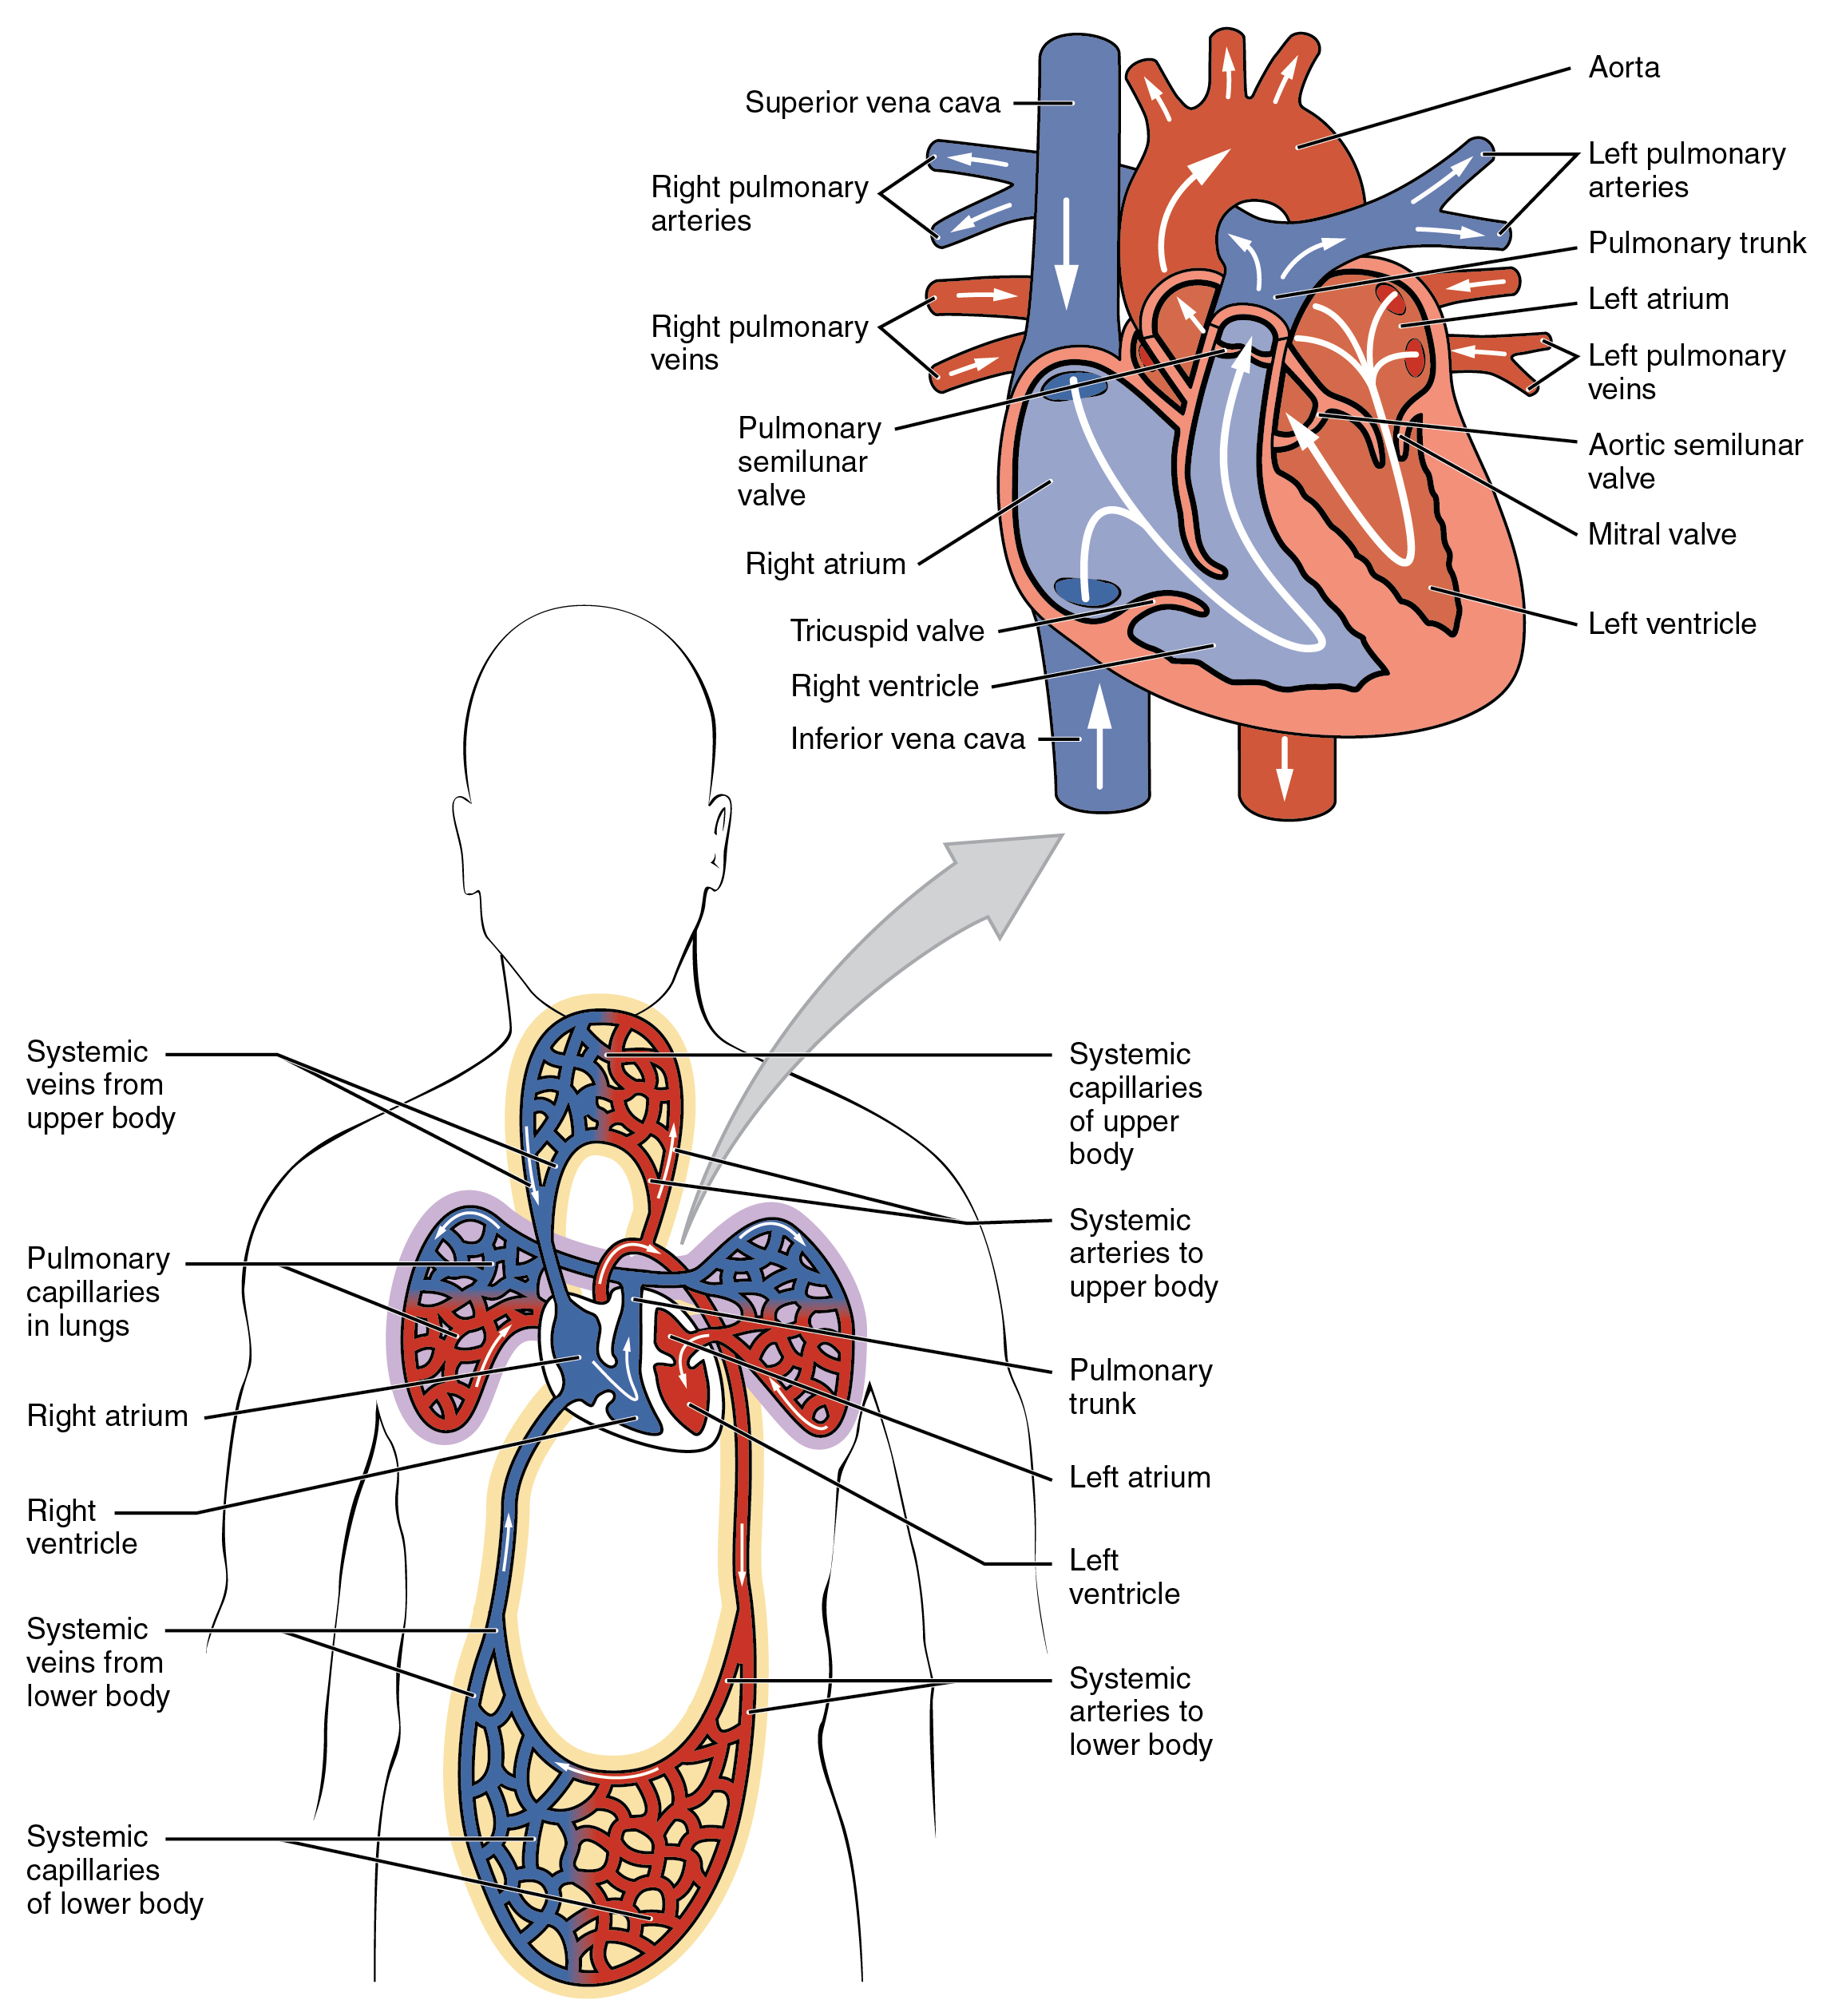 Heart anatomy anatomy and physiology the top panel shows the human heart with the arteries and veins labeled the bottom nvjuhfo Gallery